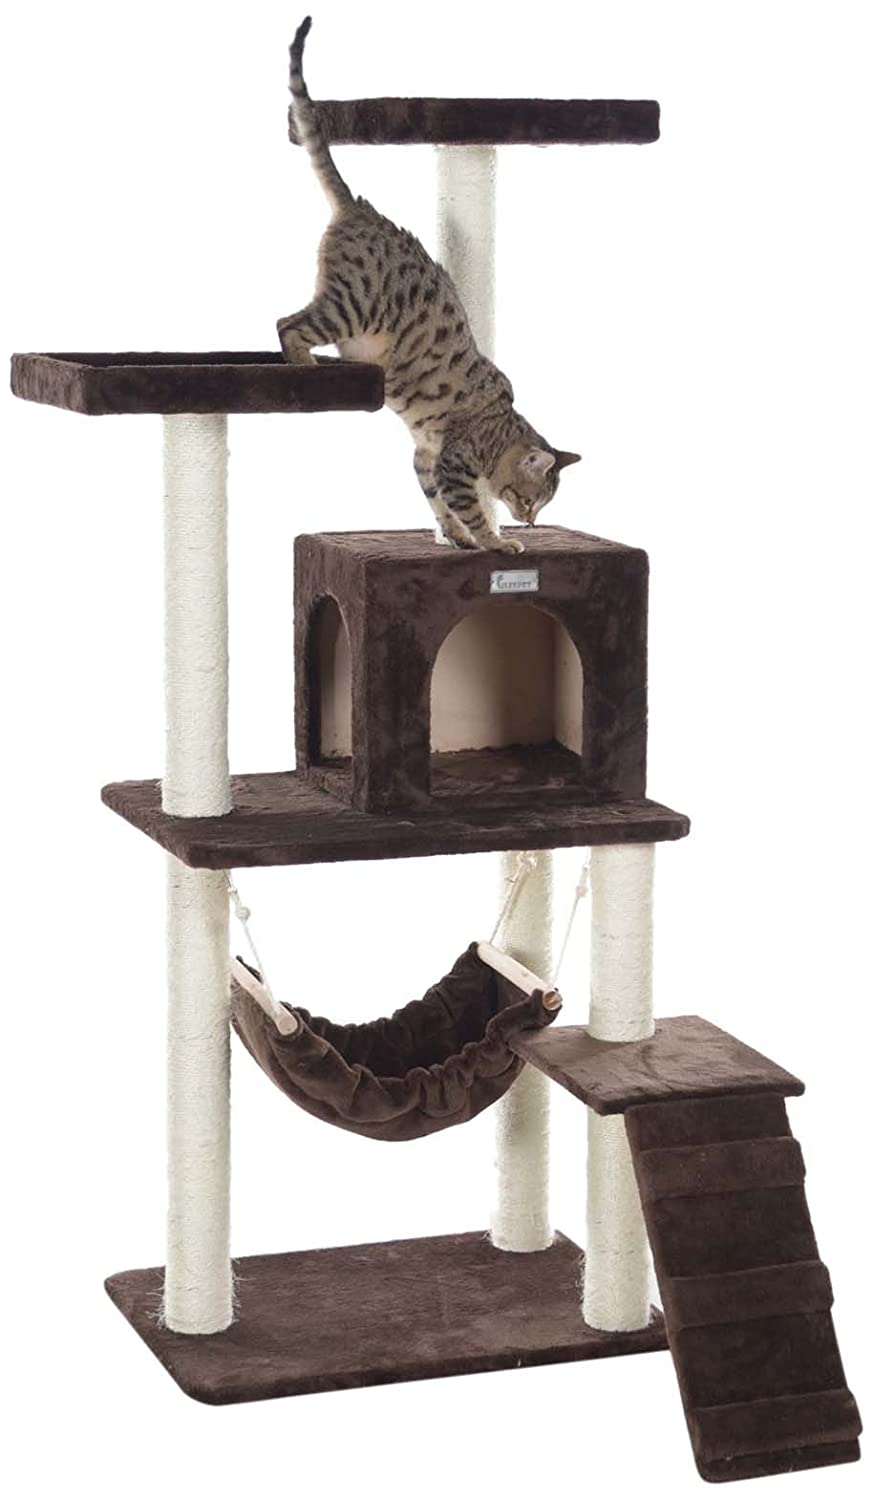 amazon     gleepet gp78570923 cat tree with ramp 57 inch coffee brown   cat tree tower   pet supplies amazon     gleepet gp78570923 cat tree with ramp 57 inch      rh   amazon